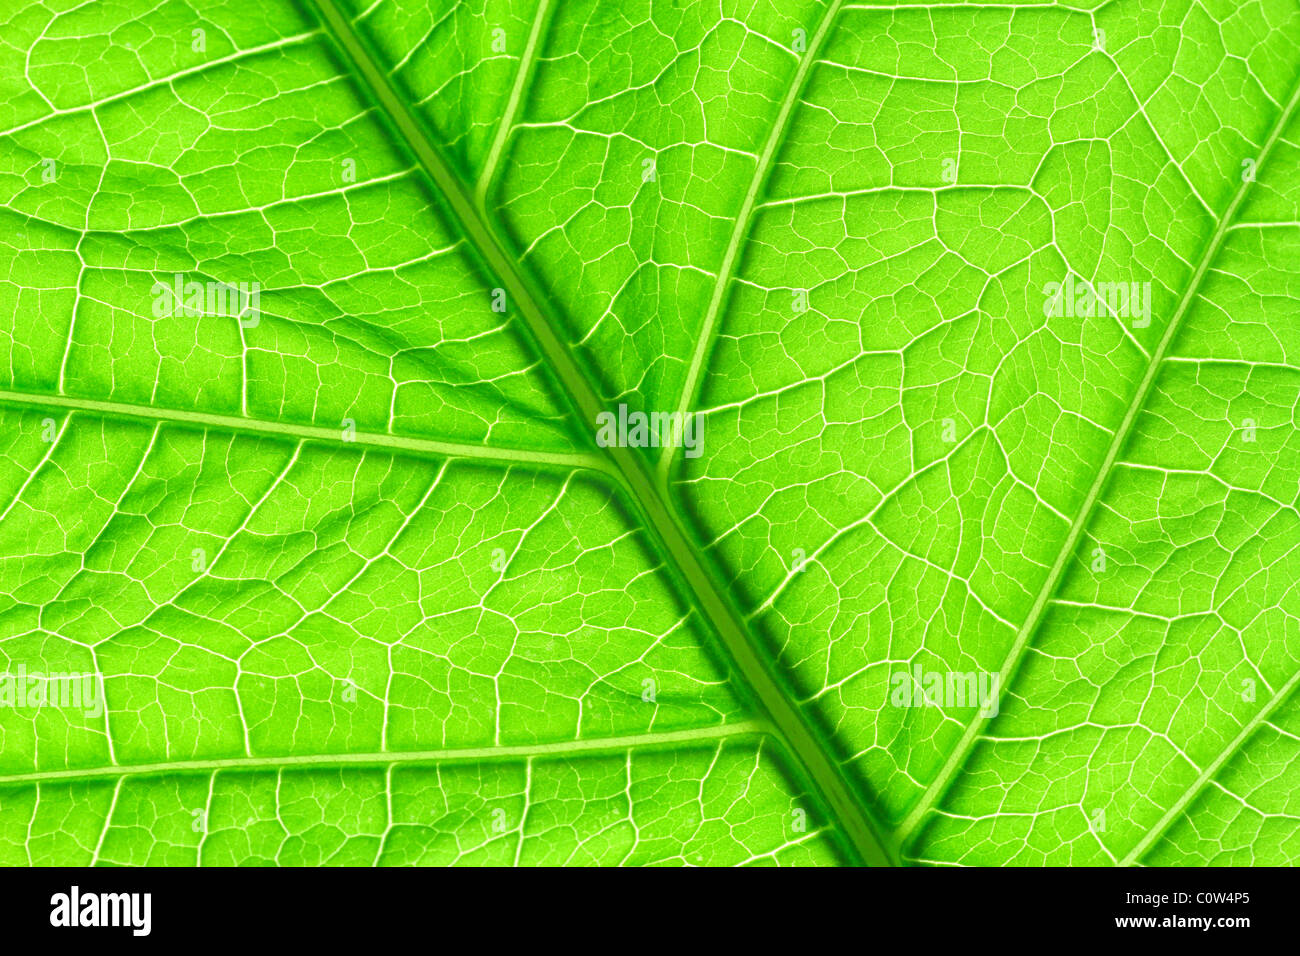 Green leaf detail showing veins and cells - Stock Image